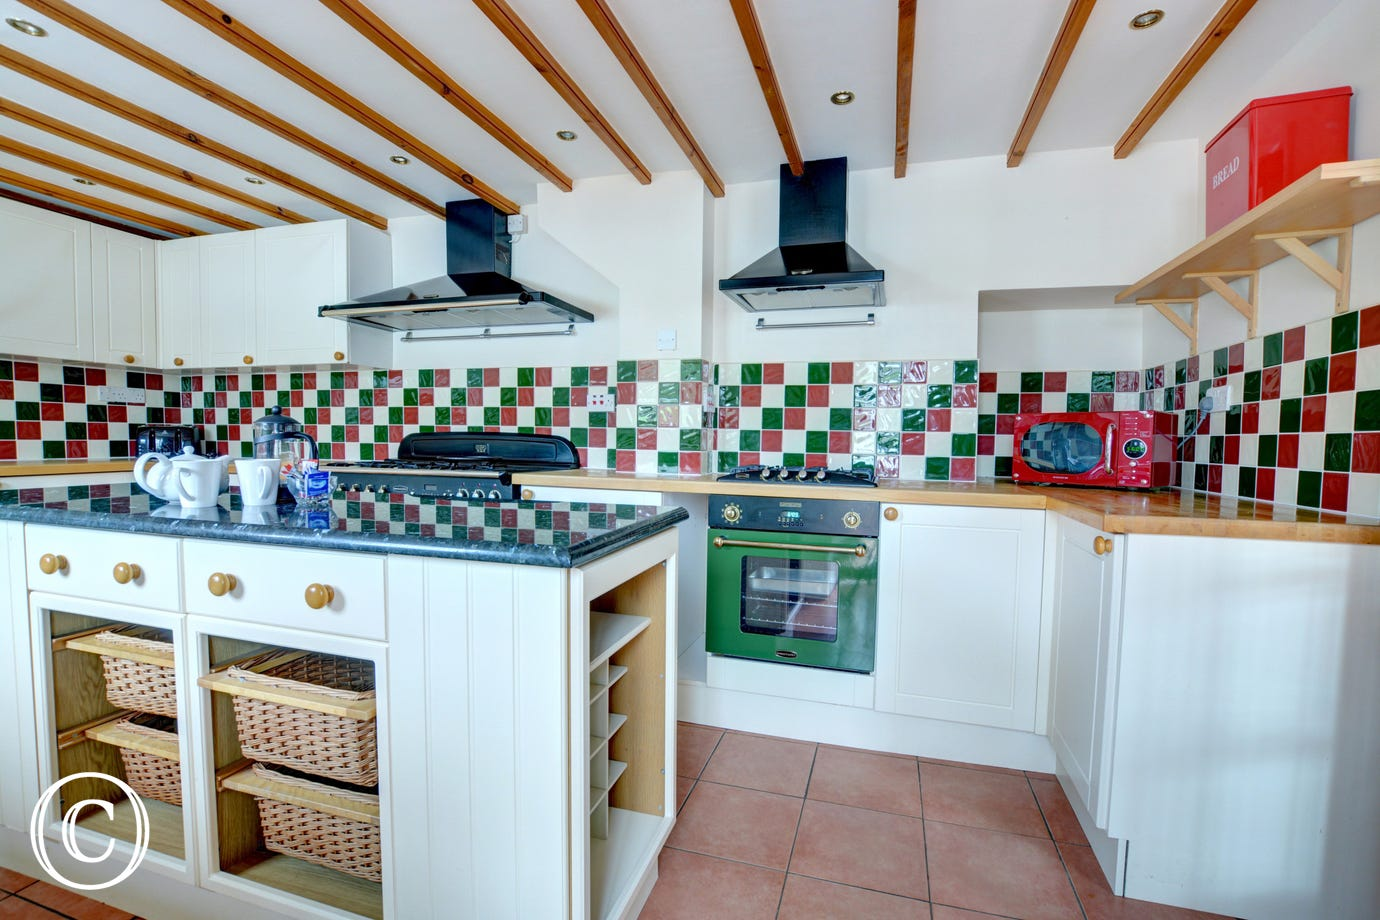 Kitchen fitted with Aga